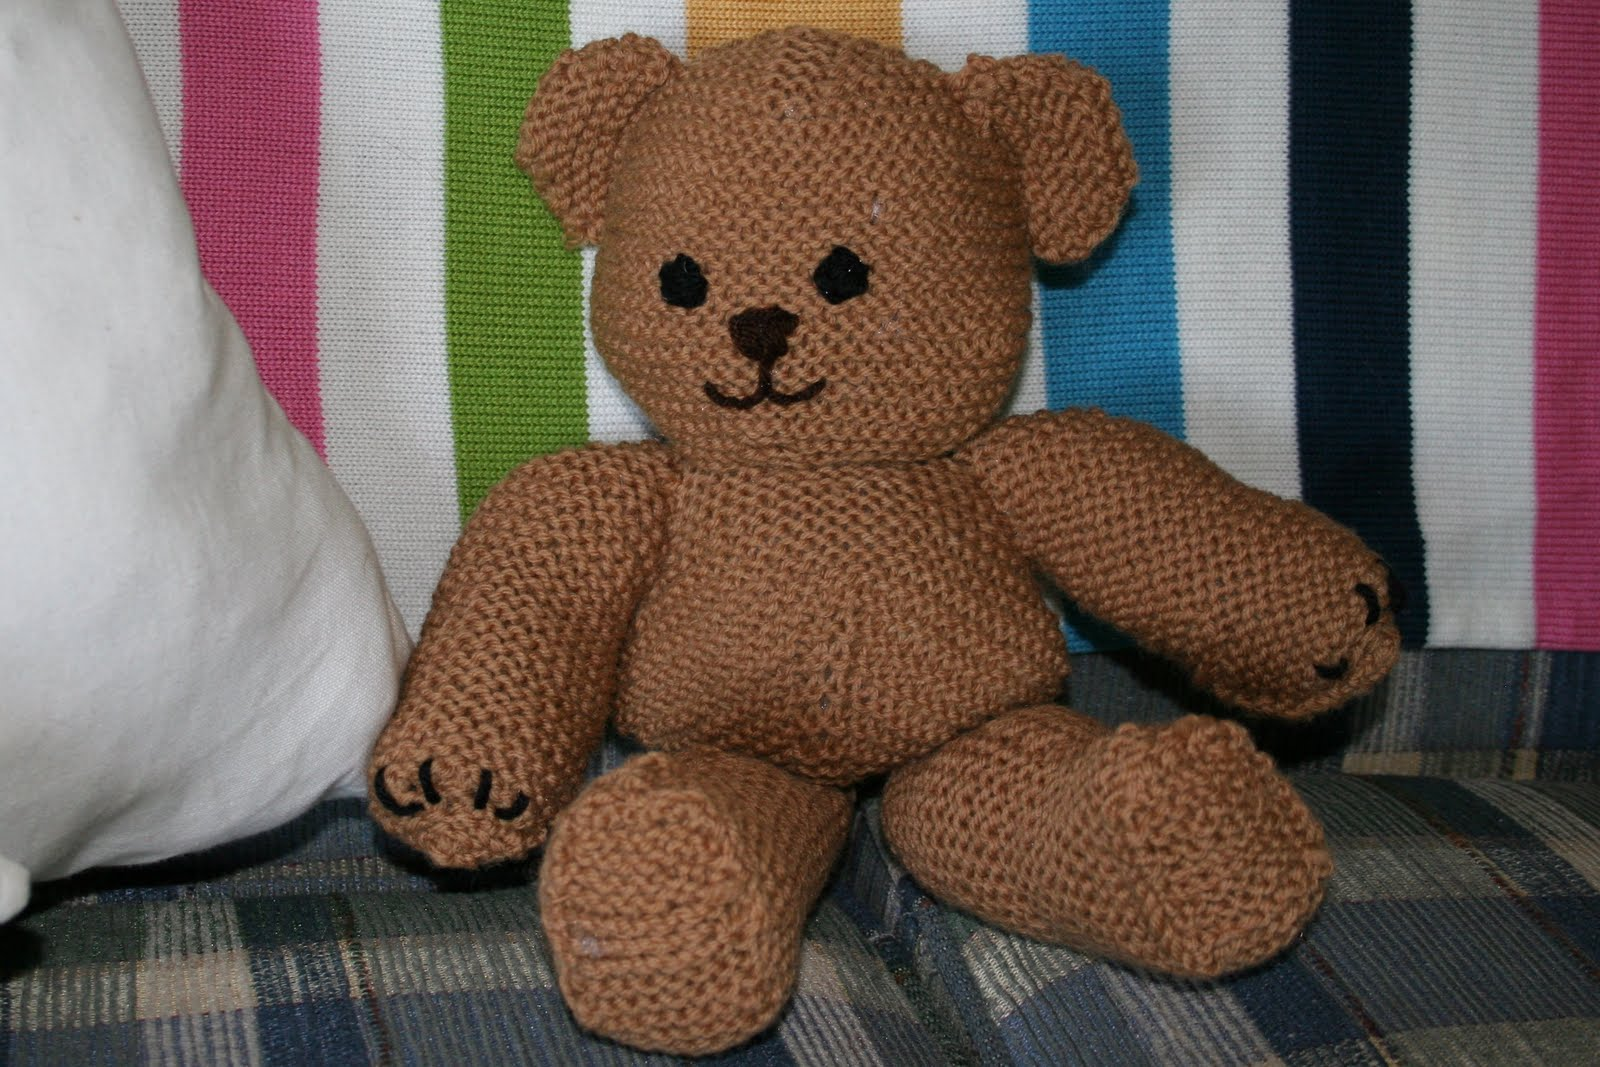 Knitting Pattern For All In One Teddy Bear : Teddy Bear Patterns For Free To Knit Sew Or Crochet   USF Bloggers Planet